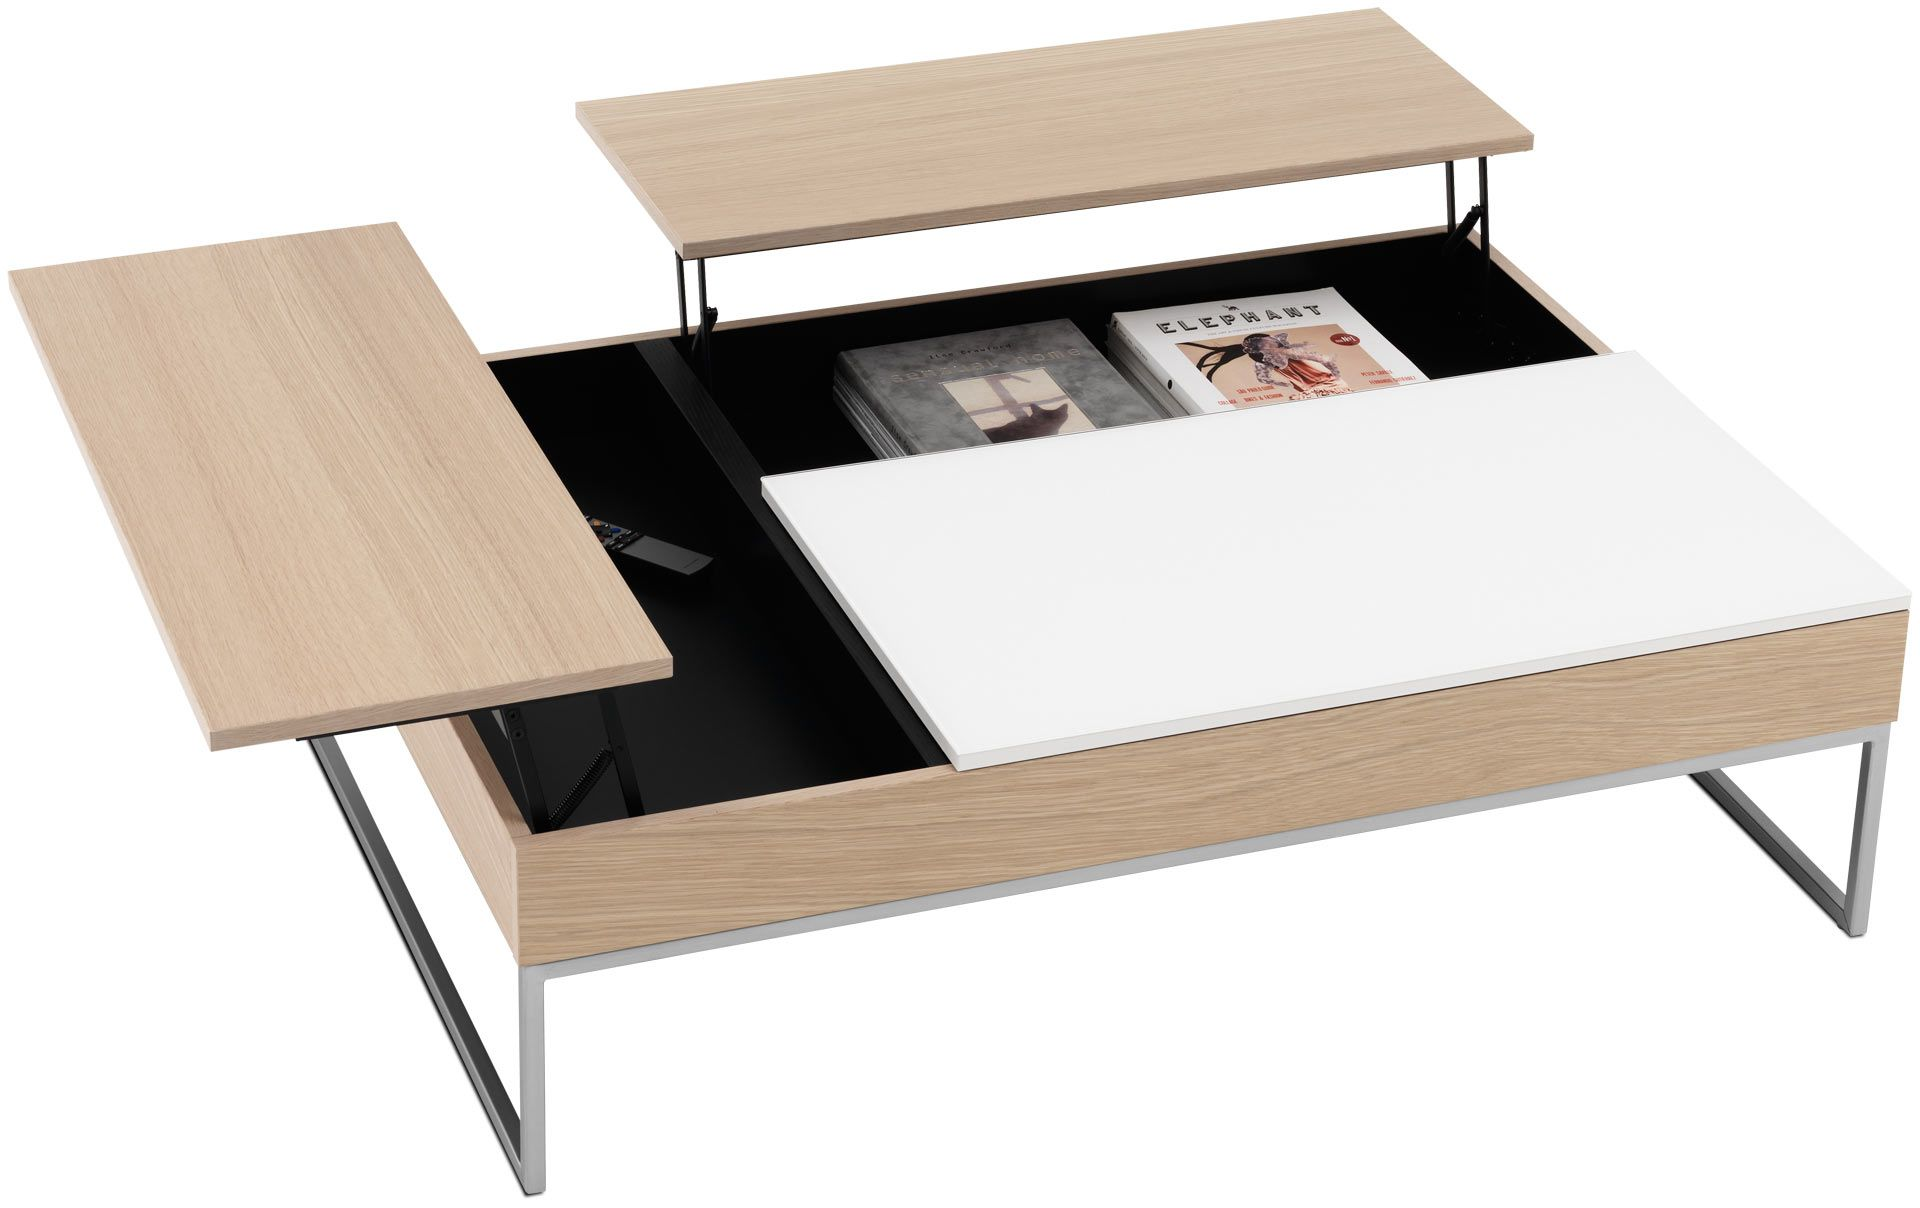 modern coffee tables quality from bo concept i want this soooooo bad now if only i had the. Black Bedroom Furniture Sets. Home Design Ideas